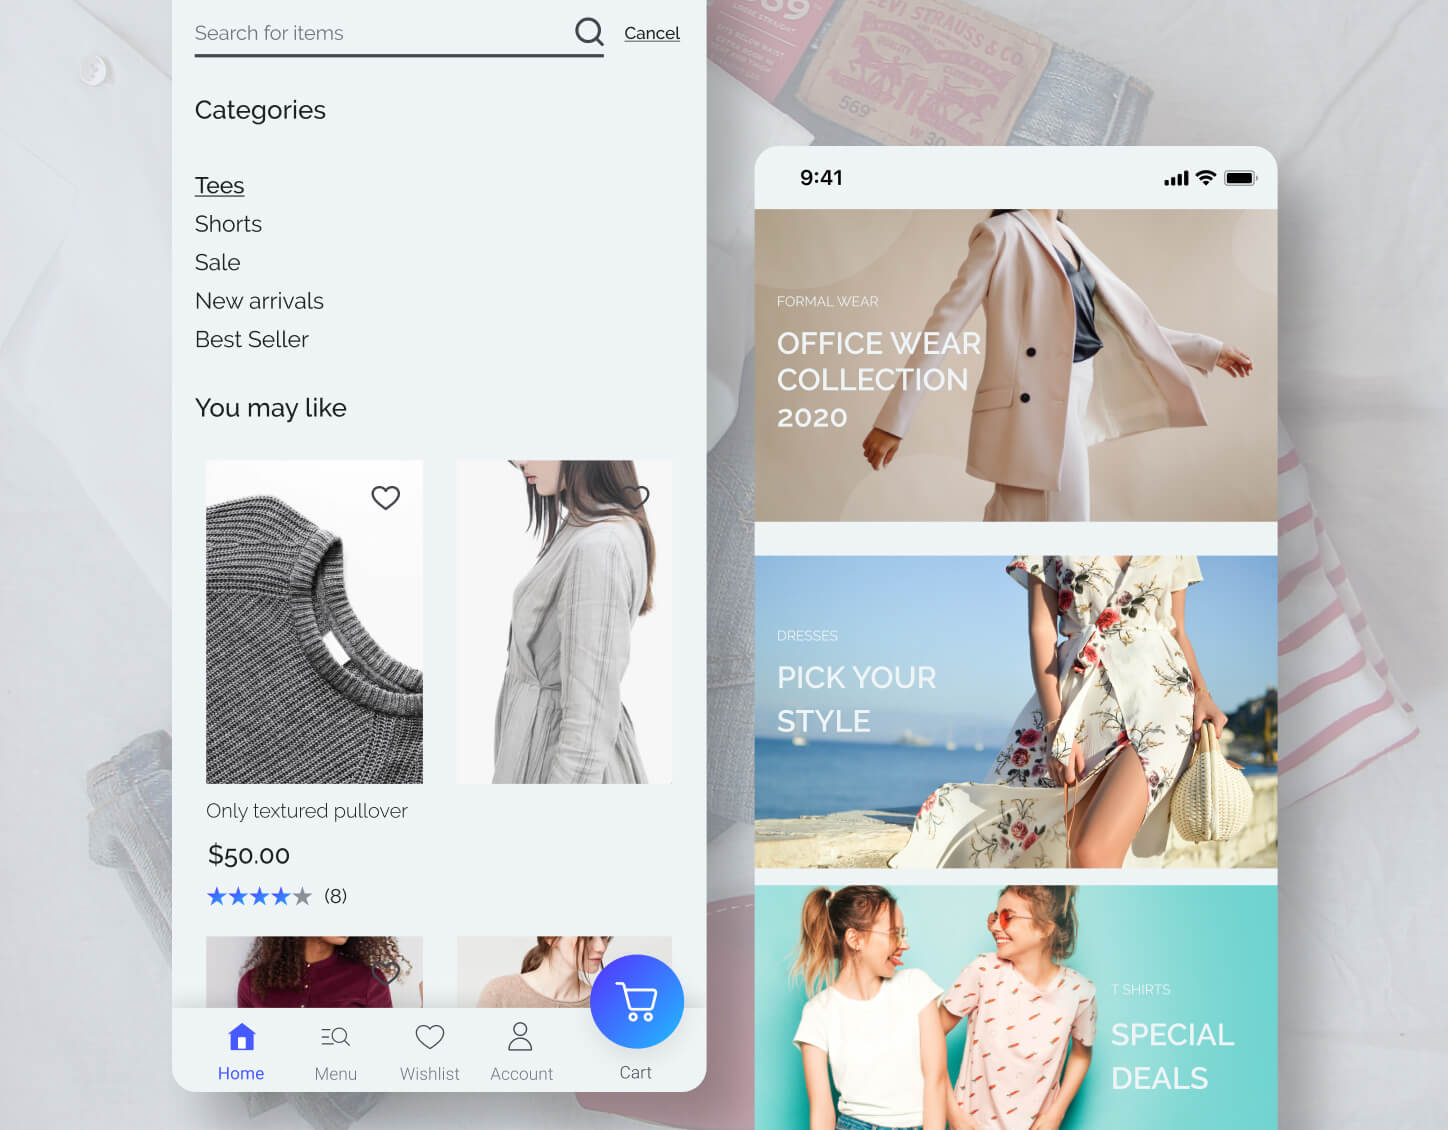 app screens of a fashion ecommerce brand